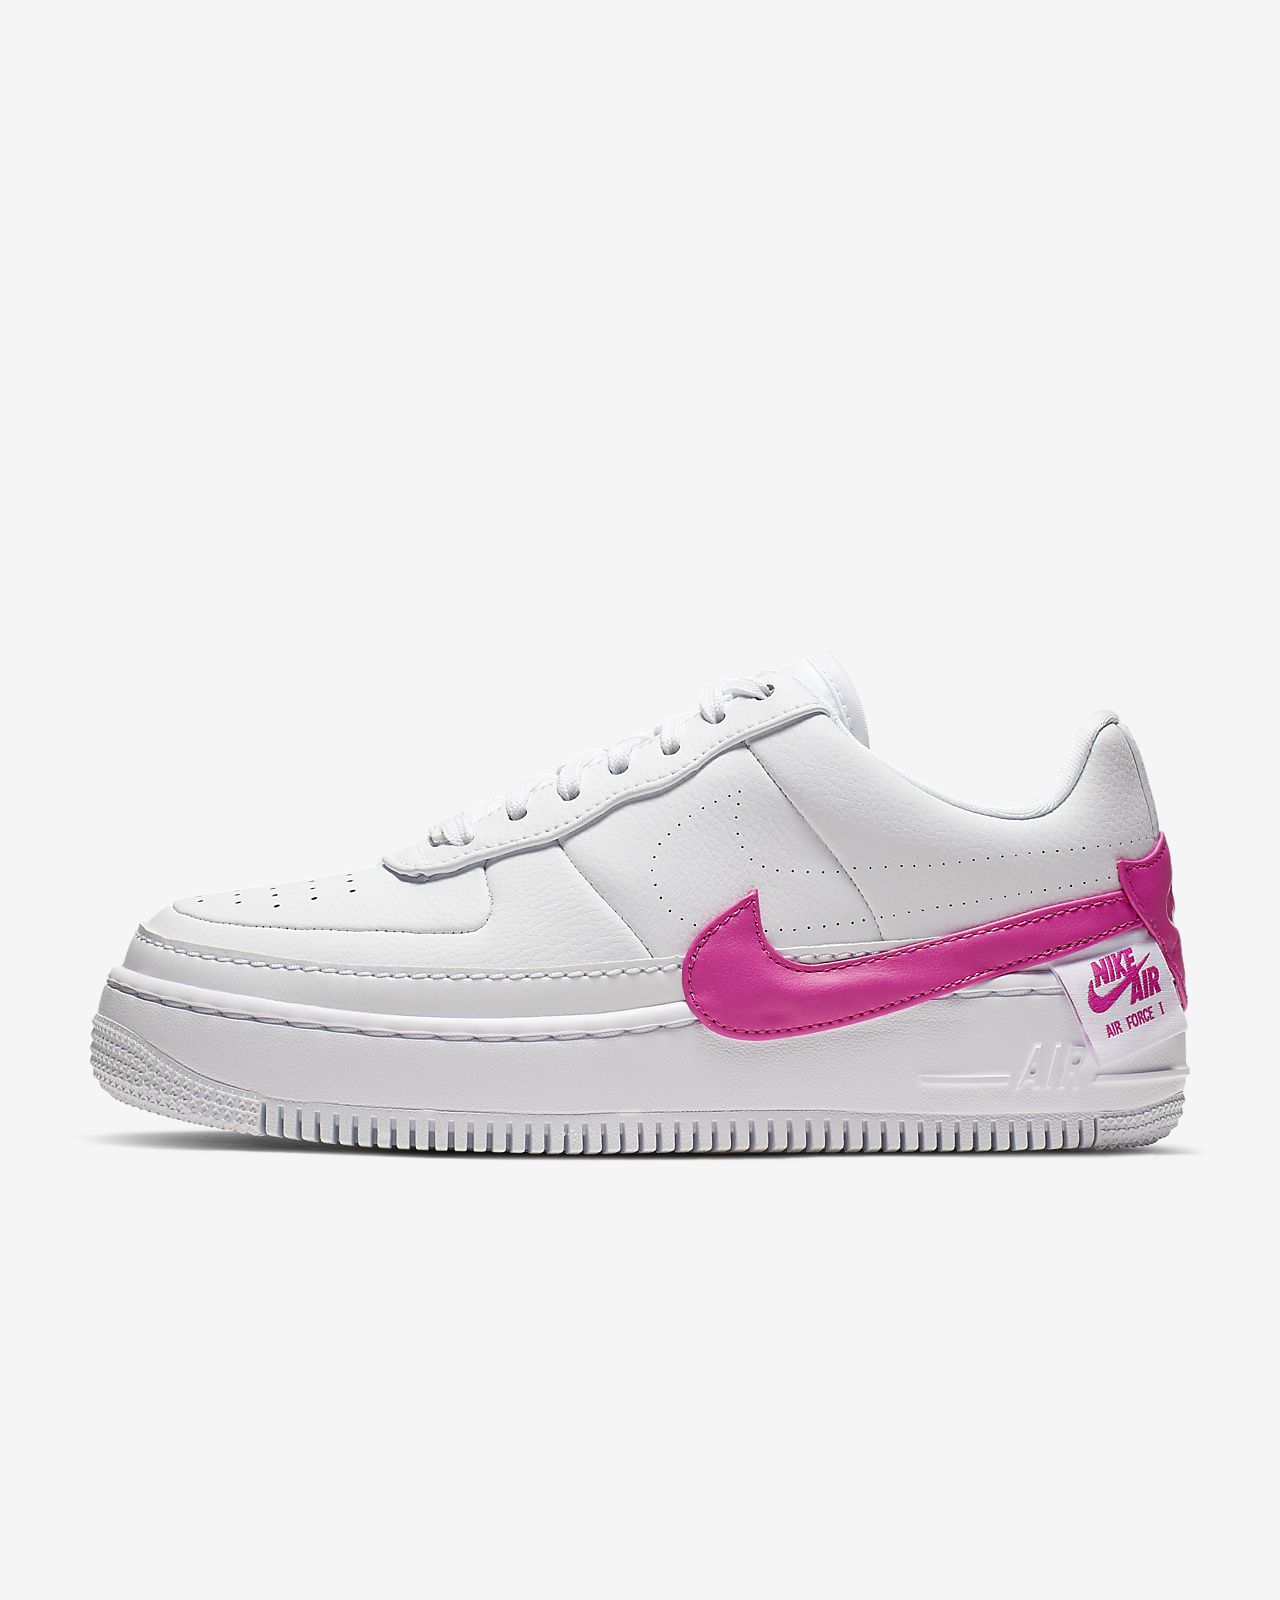 1545c6bb0eacae Nike Air Force 1 Jester XX Women s Shoe. Nike.com CA